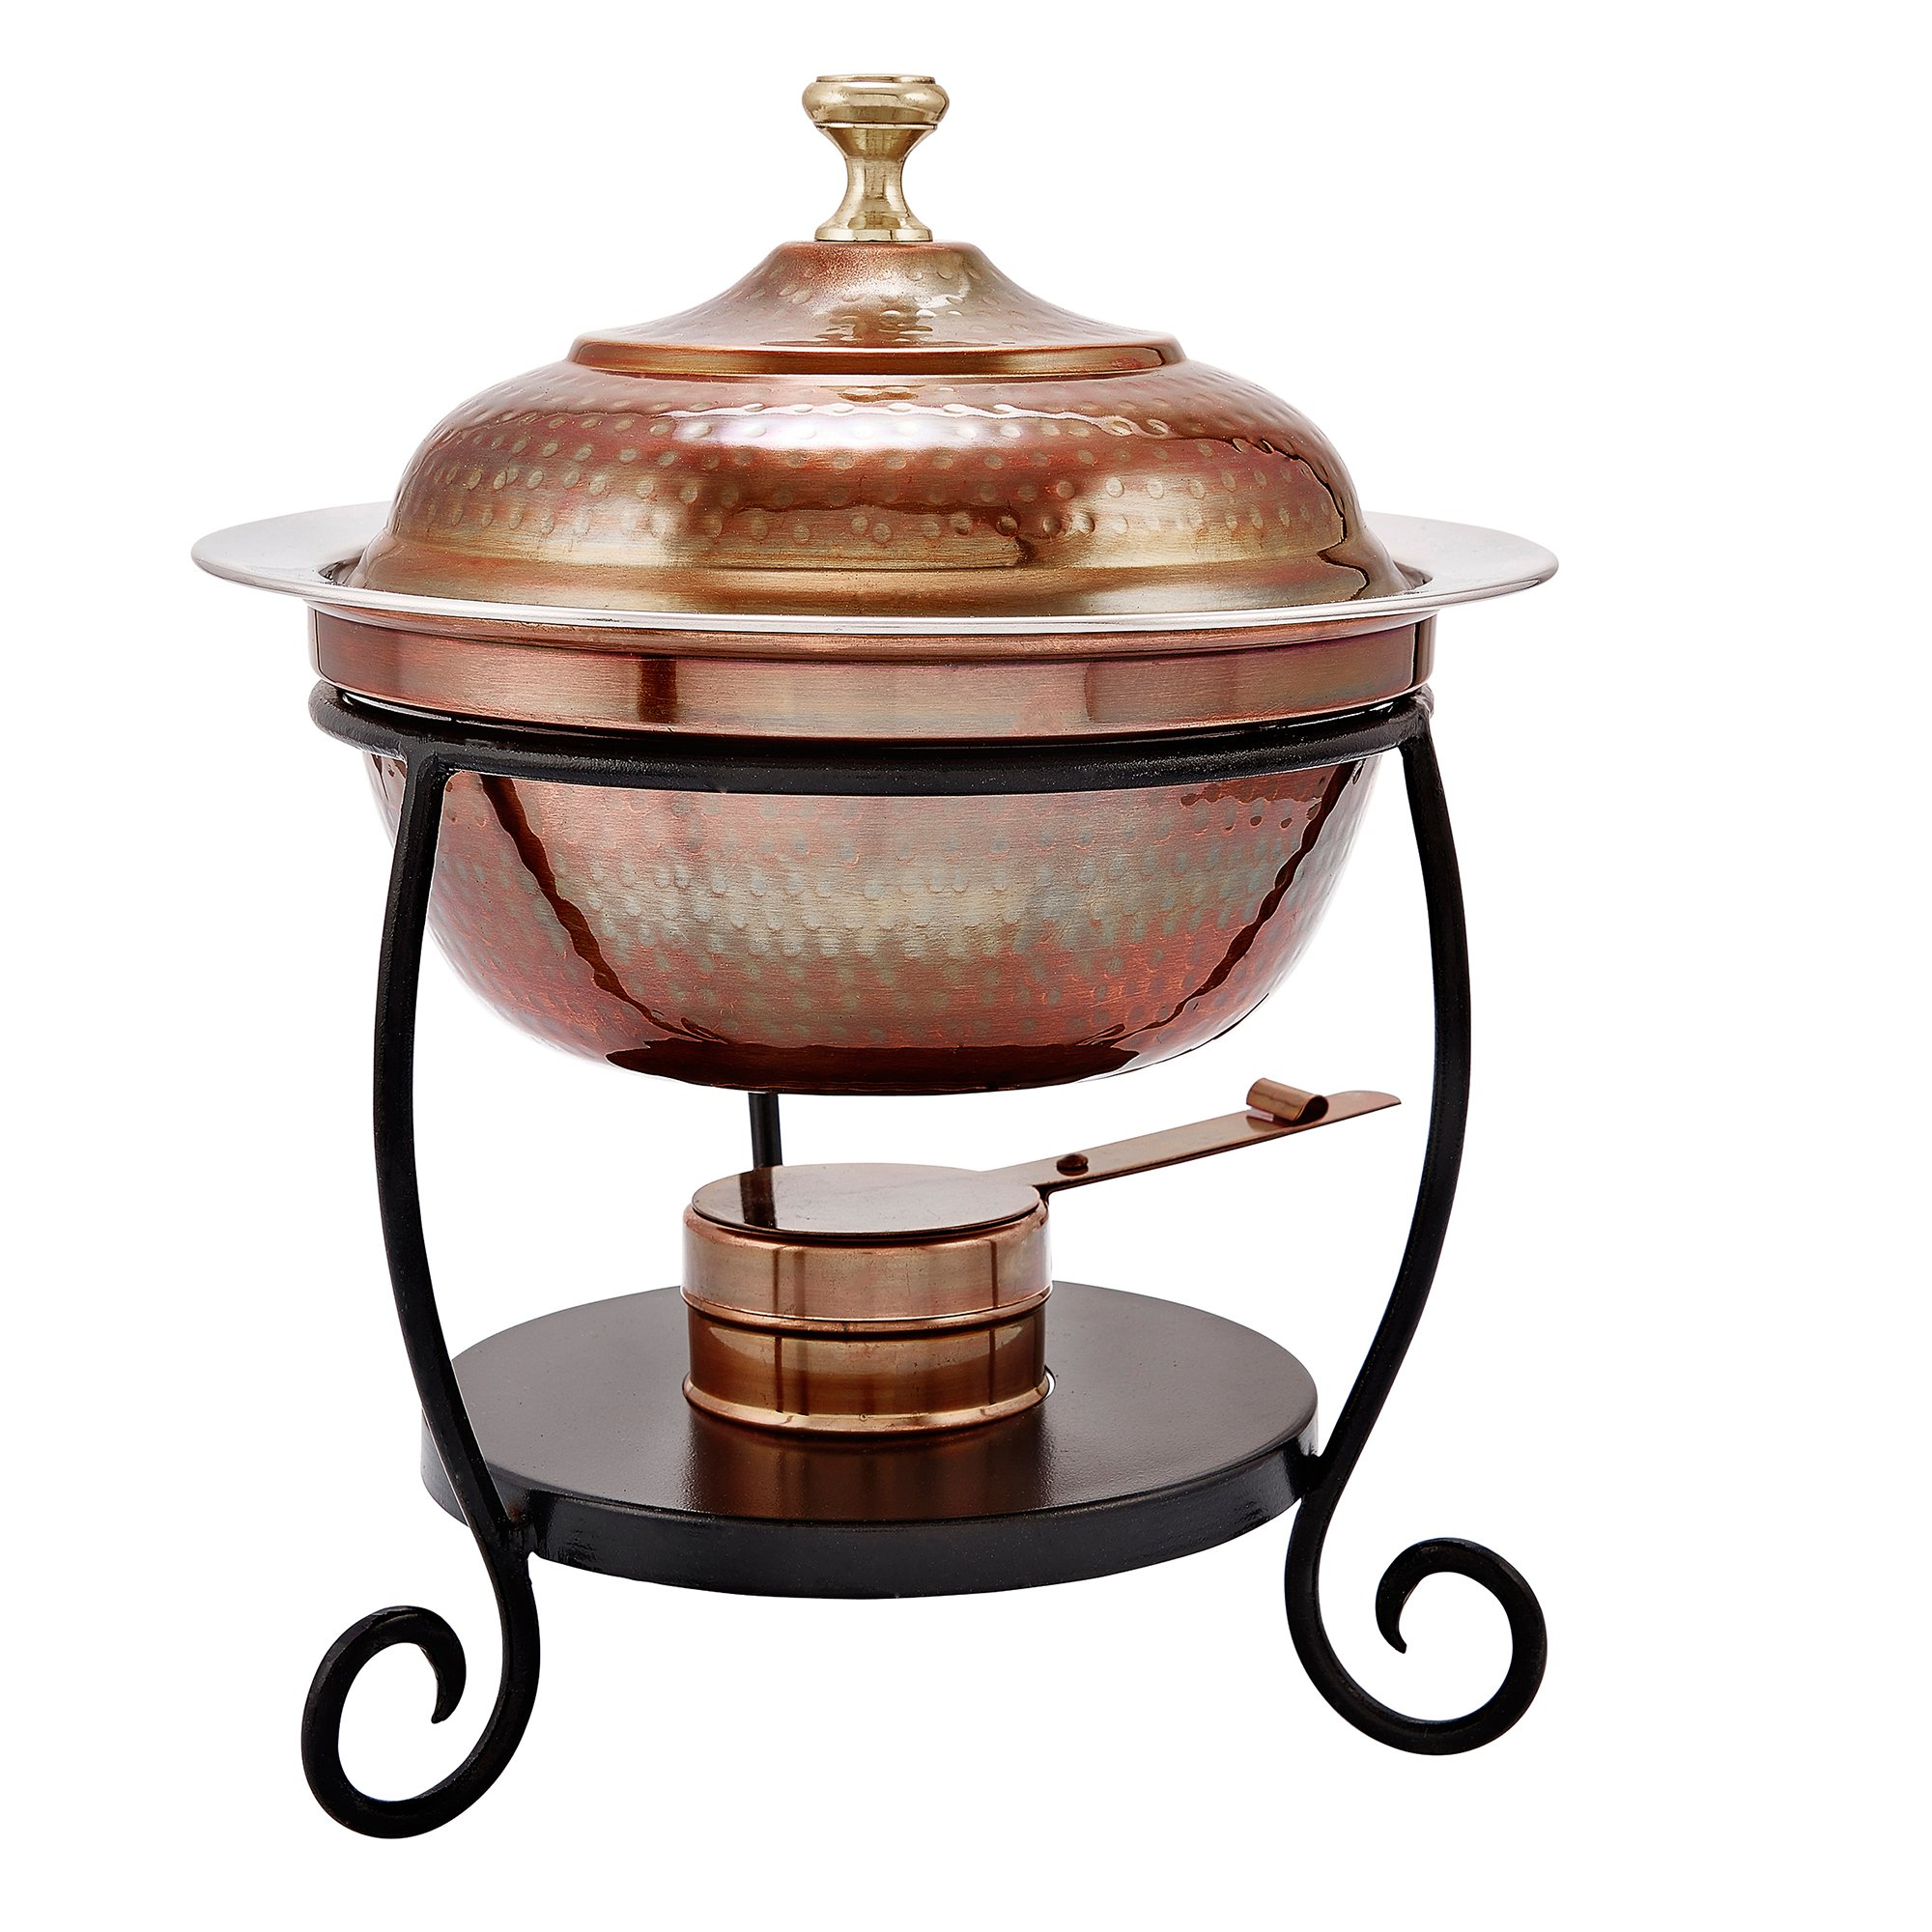 Old Dutch 838 10½'' x 12'' Round Antique Copper, 1¾ Qt. Chafing Dish, by Old Dutch